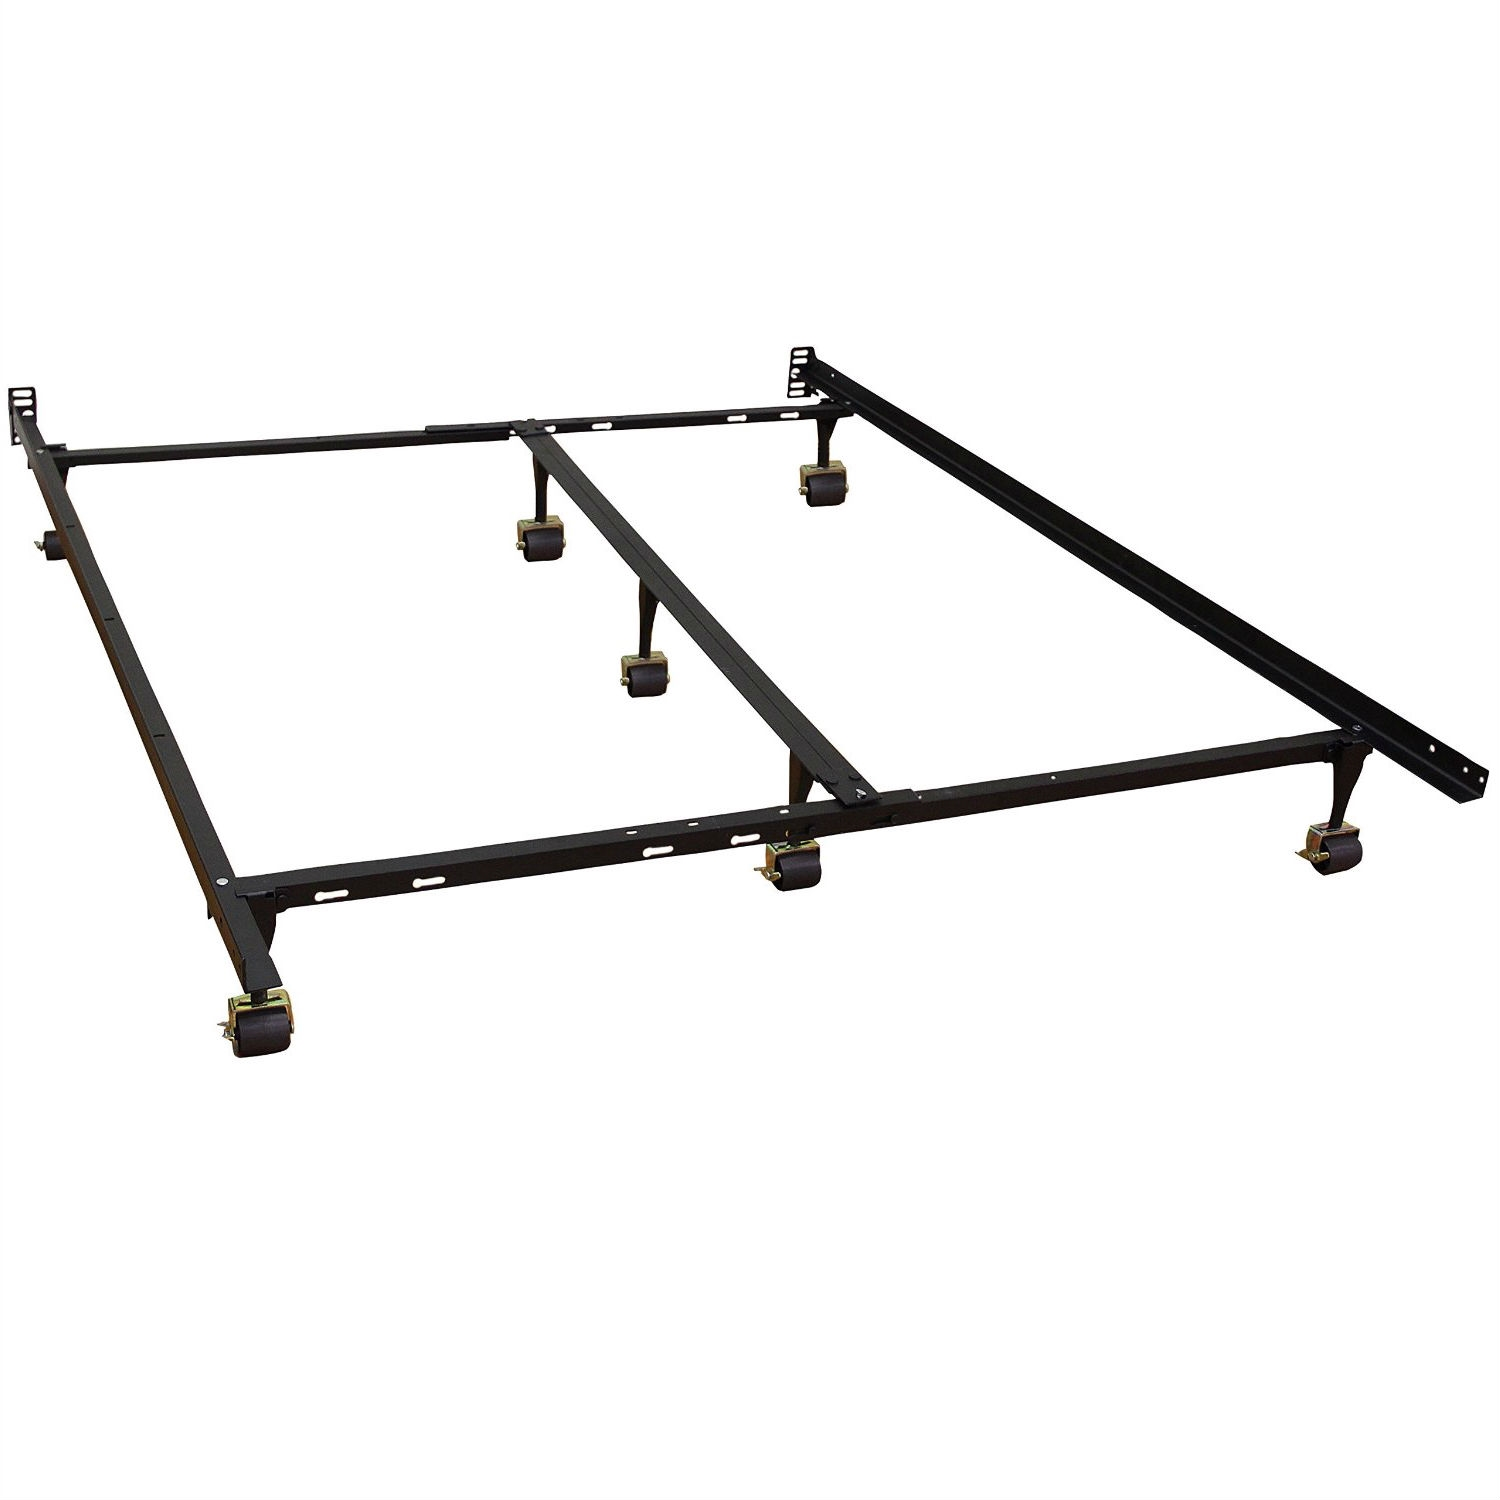 Full size Sturdy Metal Bed Frame with 7Legs Locking Casters and